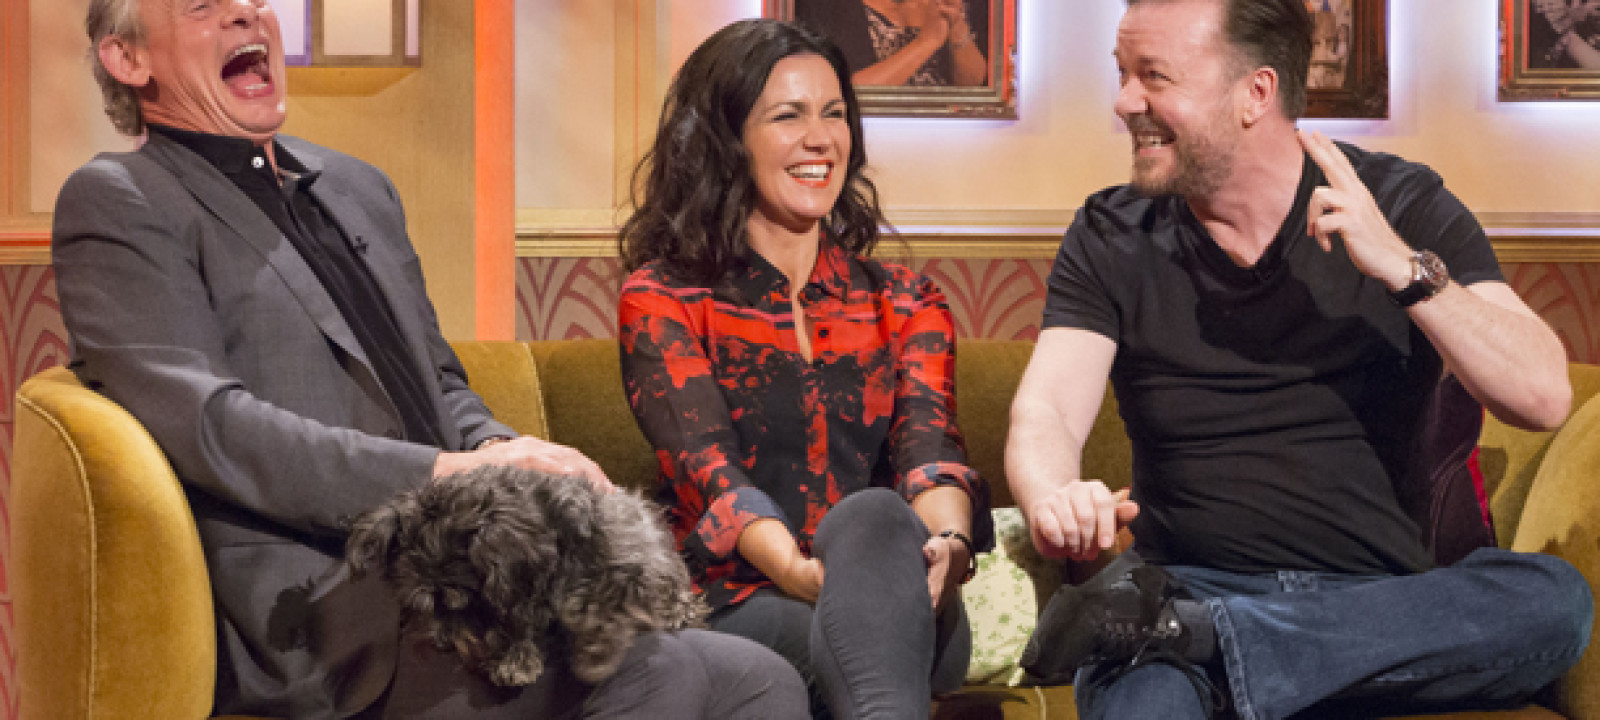 'The Paul O'Grady Show' TV Programme, London, Britain. – 30 Apr